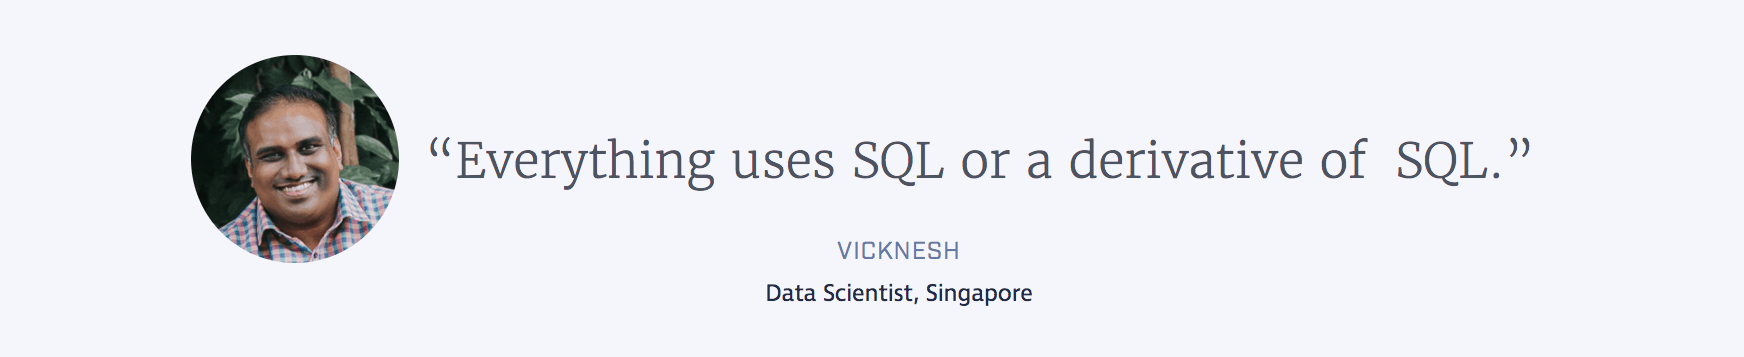 vicknesh-quote-using-sql-job